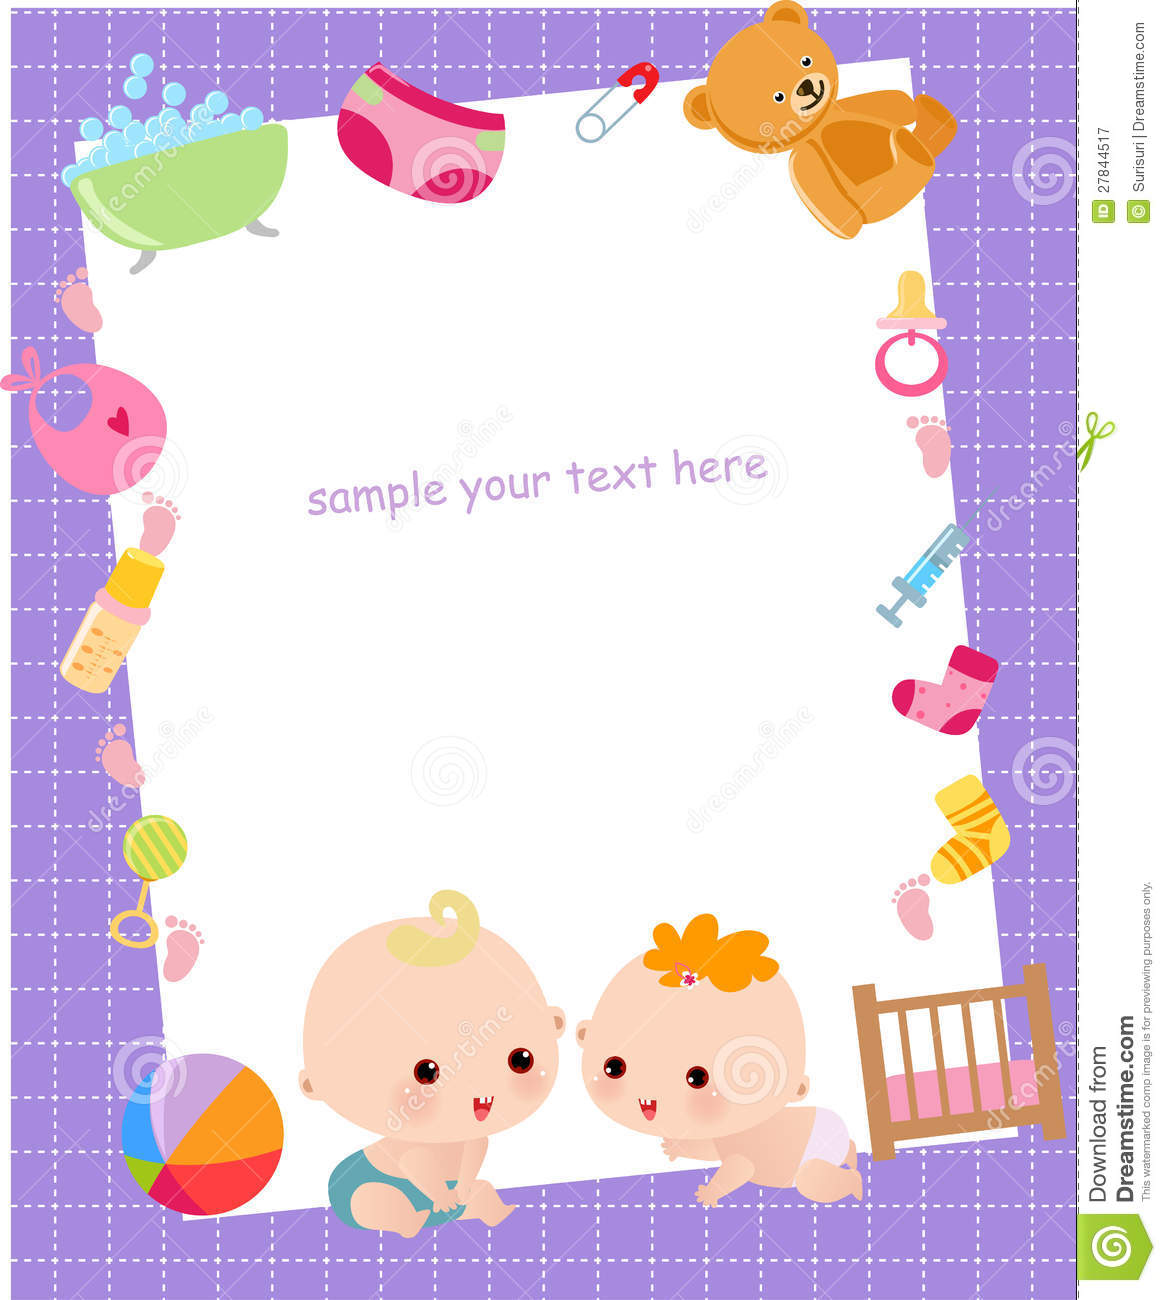 cute baby frame royalty free stock photography image 27844517